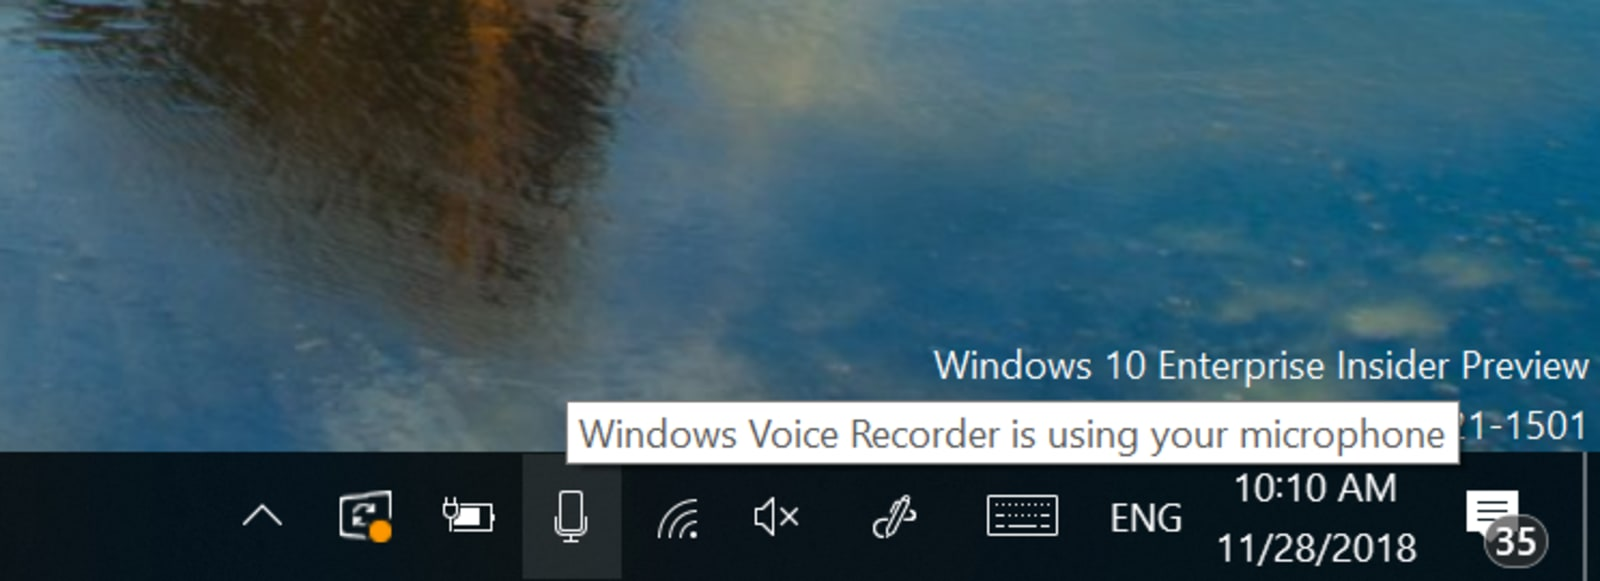 Windows 10 preview microphone privacy